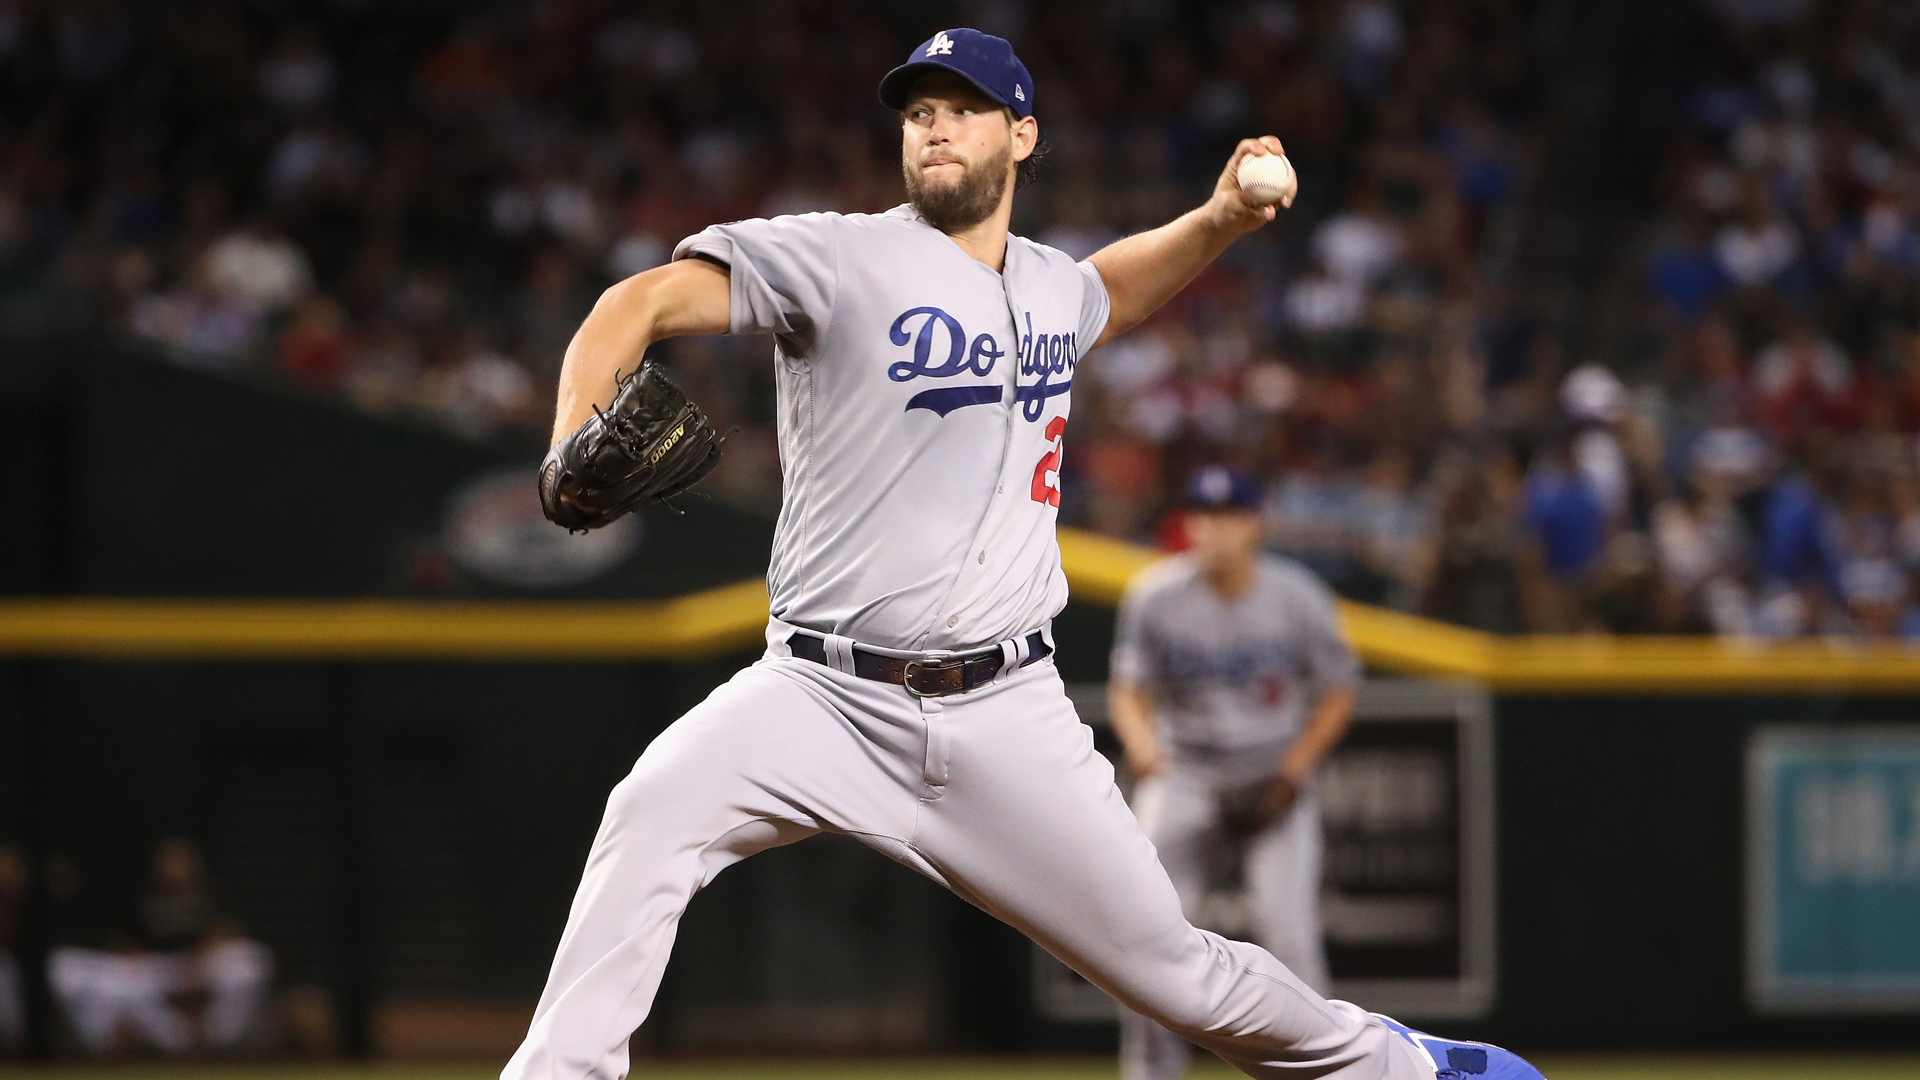 Starting pitcher Clayton Kershaw #22 of the Los Angeles Dodgers pitches against the Arizona Diamondbacks during the first inning of the MLB game at Chase Field on August 31, 2019 in Phoenix, Arizona. (Credit: Christian Petersen/Getty Images)